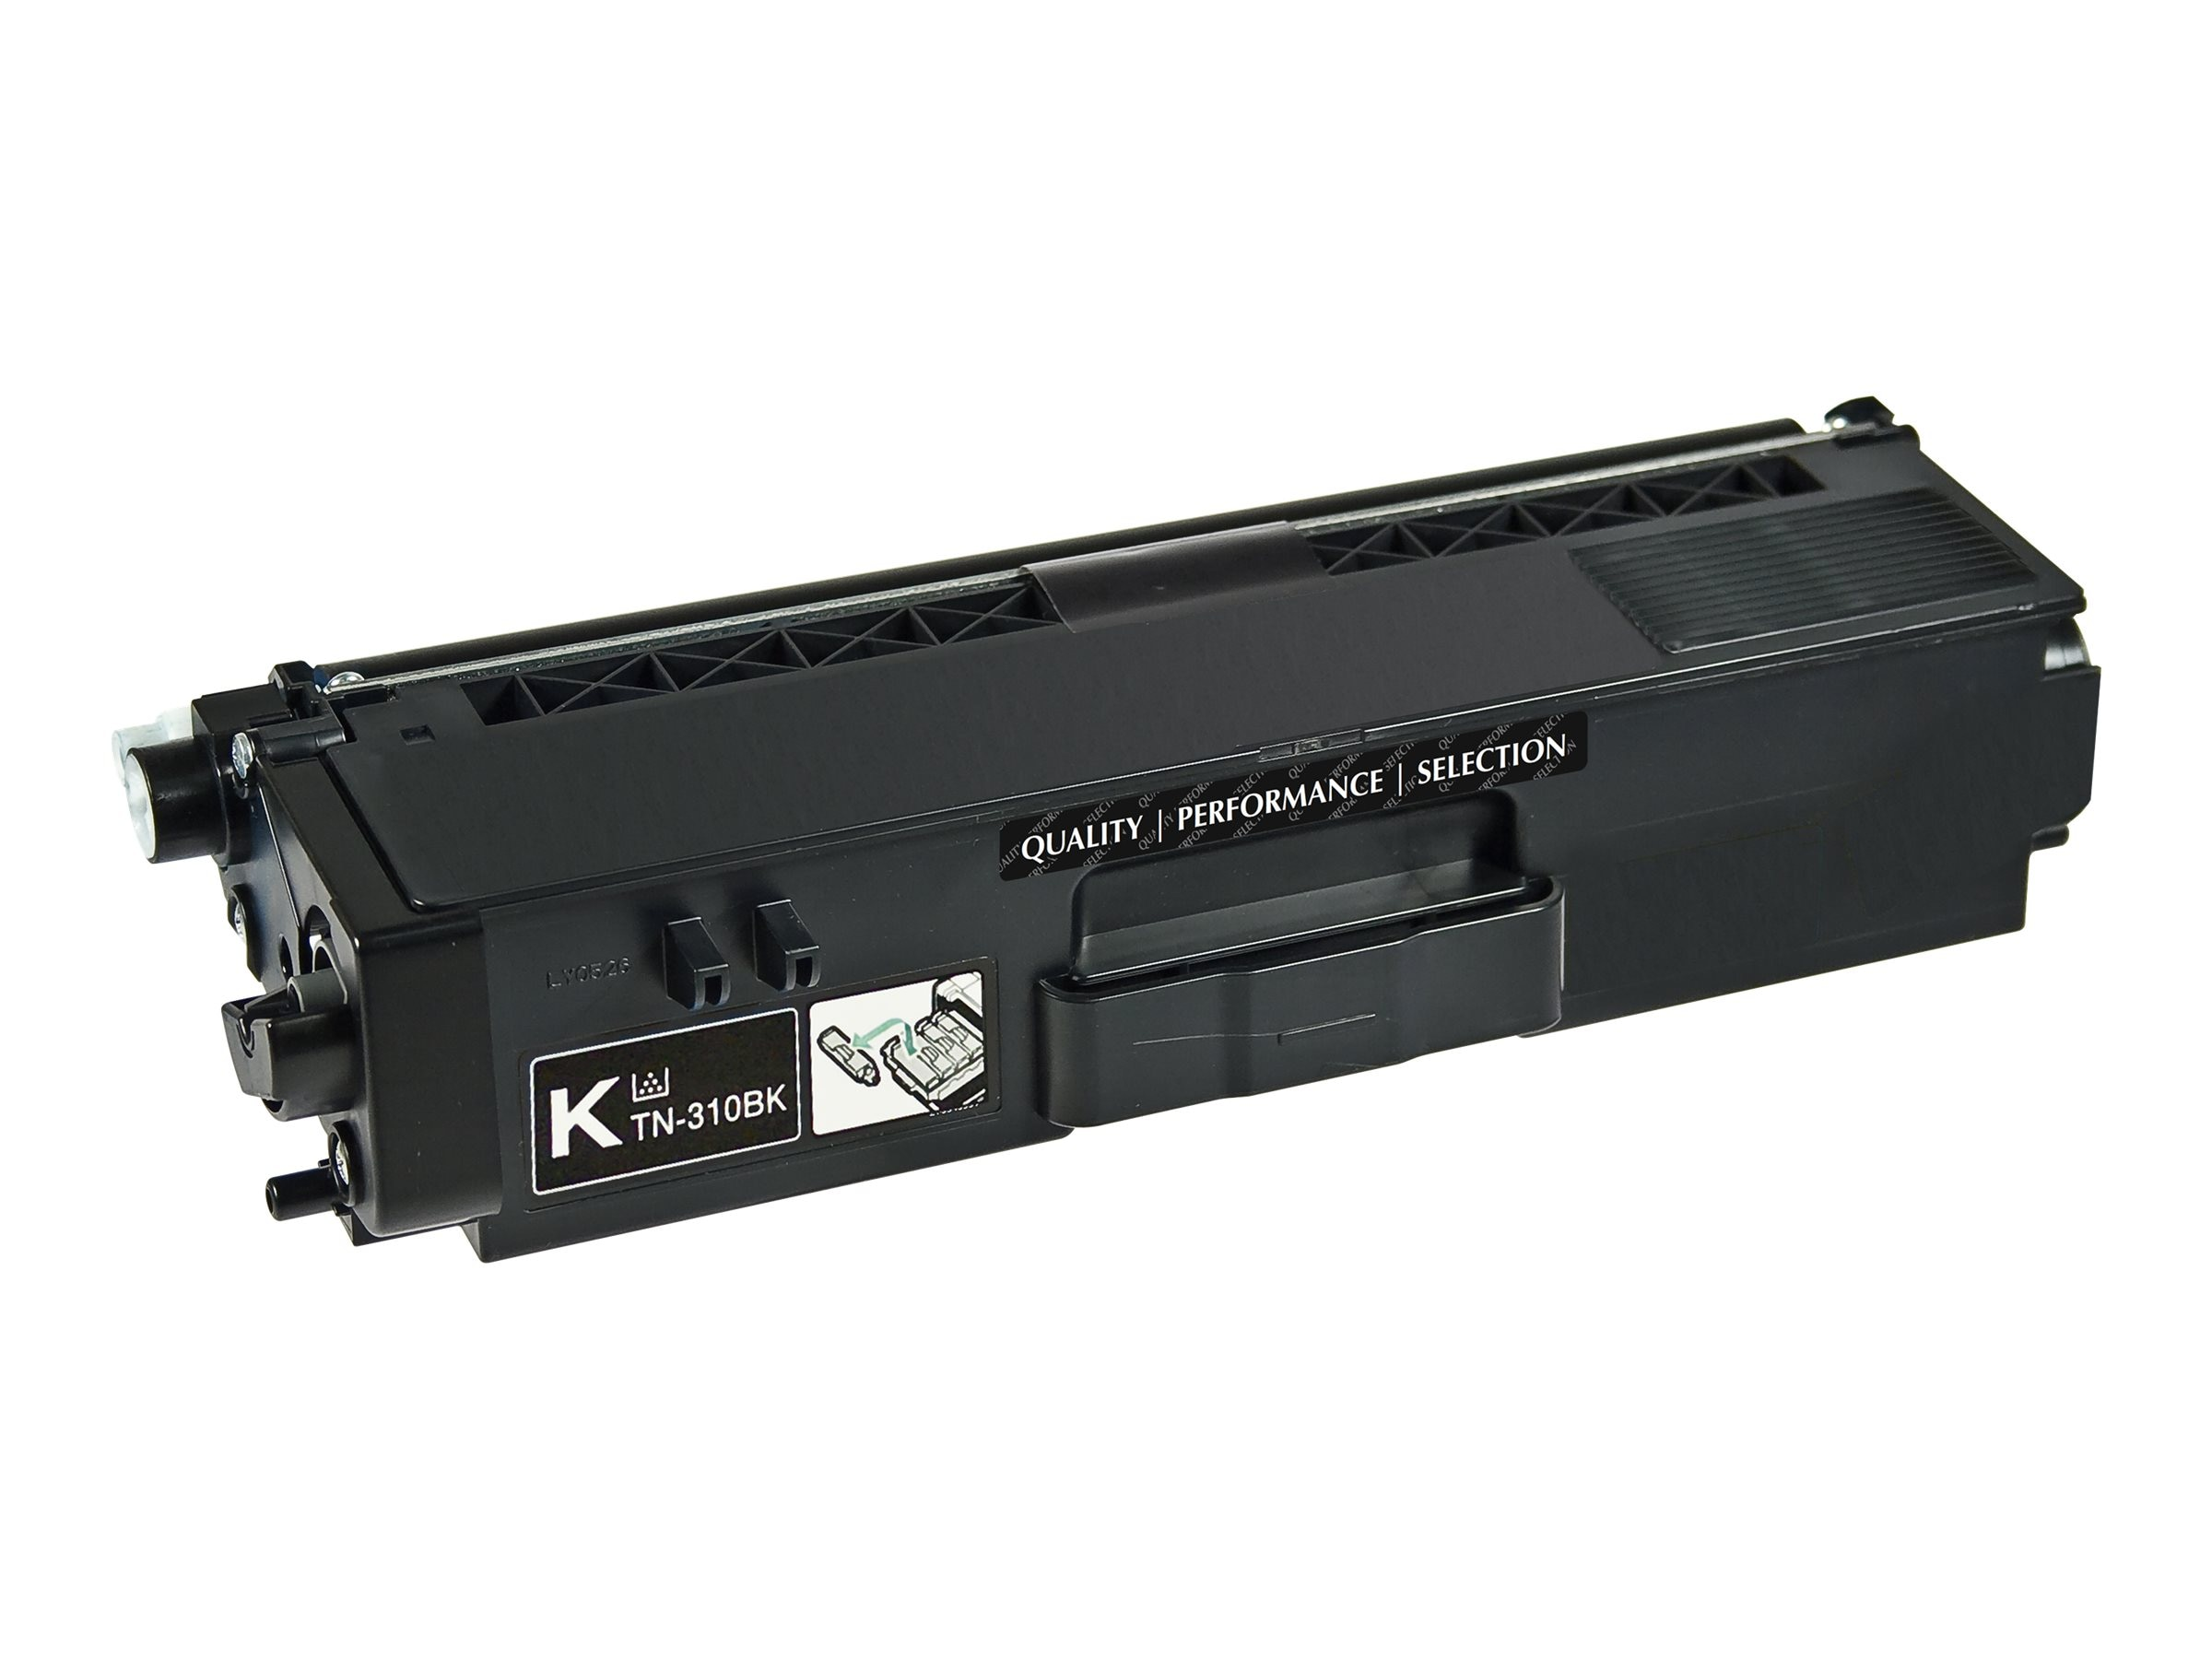 V7 TN315BK Black High Yield Toner Cartridge for Brother, V7TN315B, 17335499, Ink Cartridges & Ink Refill Kits